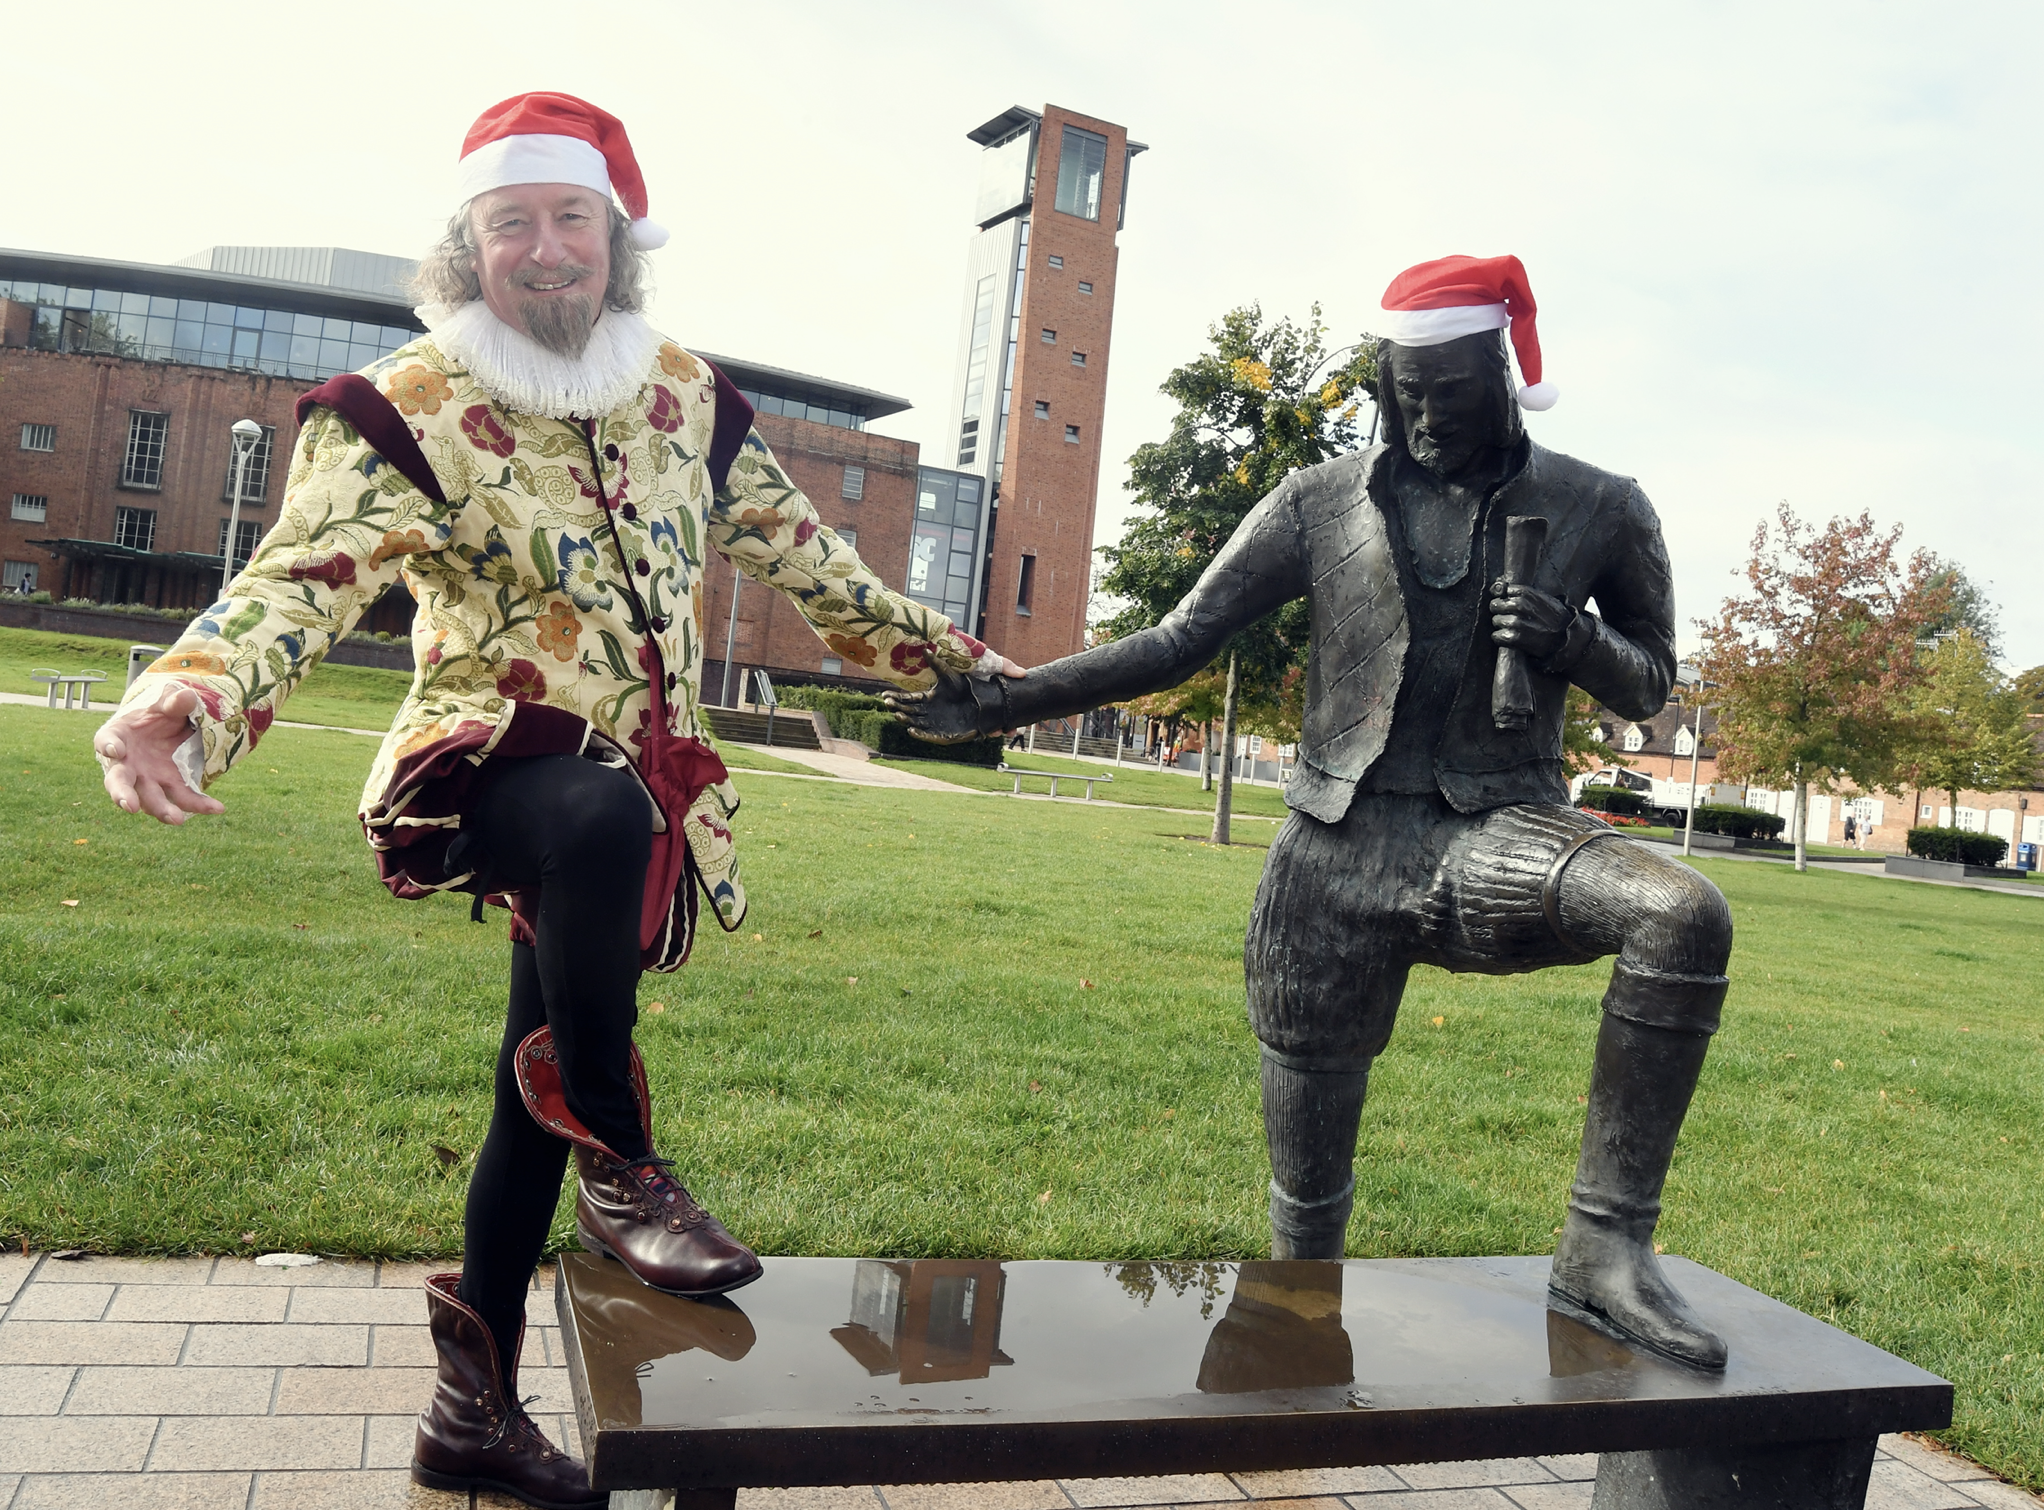 William Shakespeare Christmas